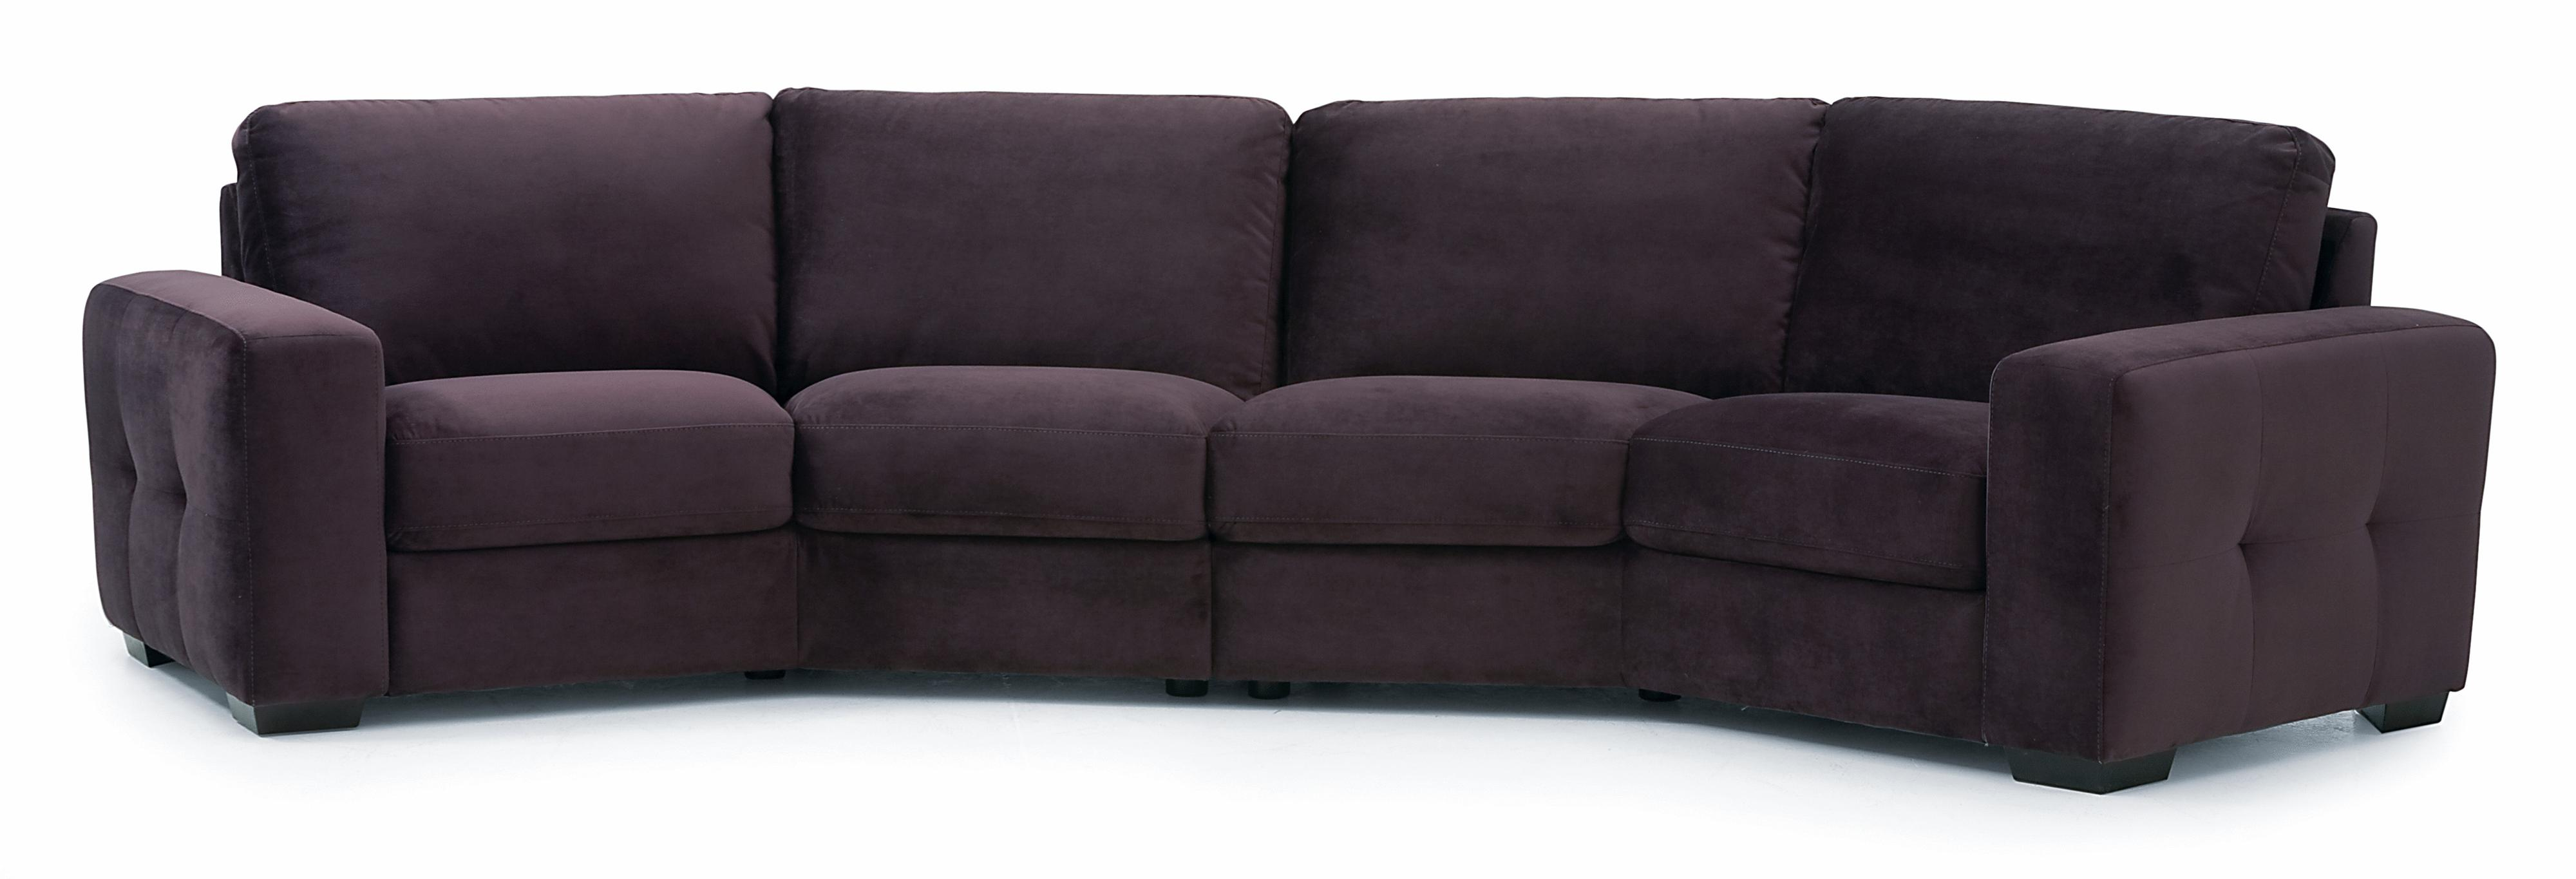 Angled Sectional Sofa Sectional Couches Ikea Oversized Sectionals